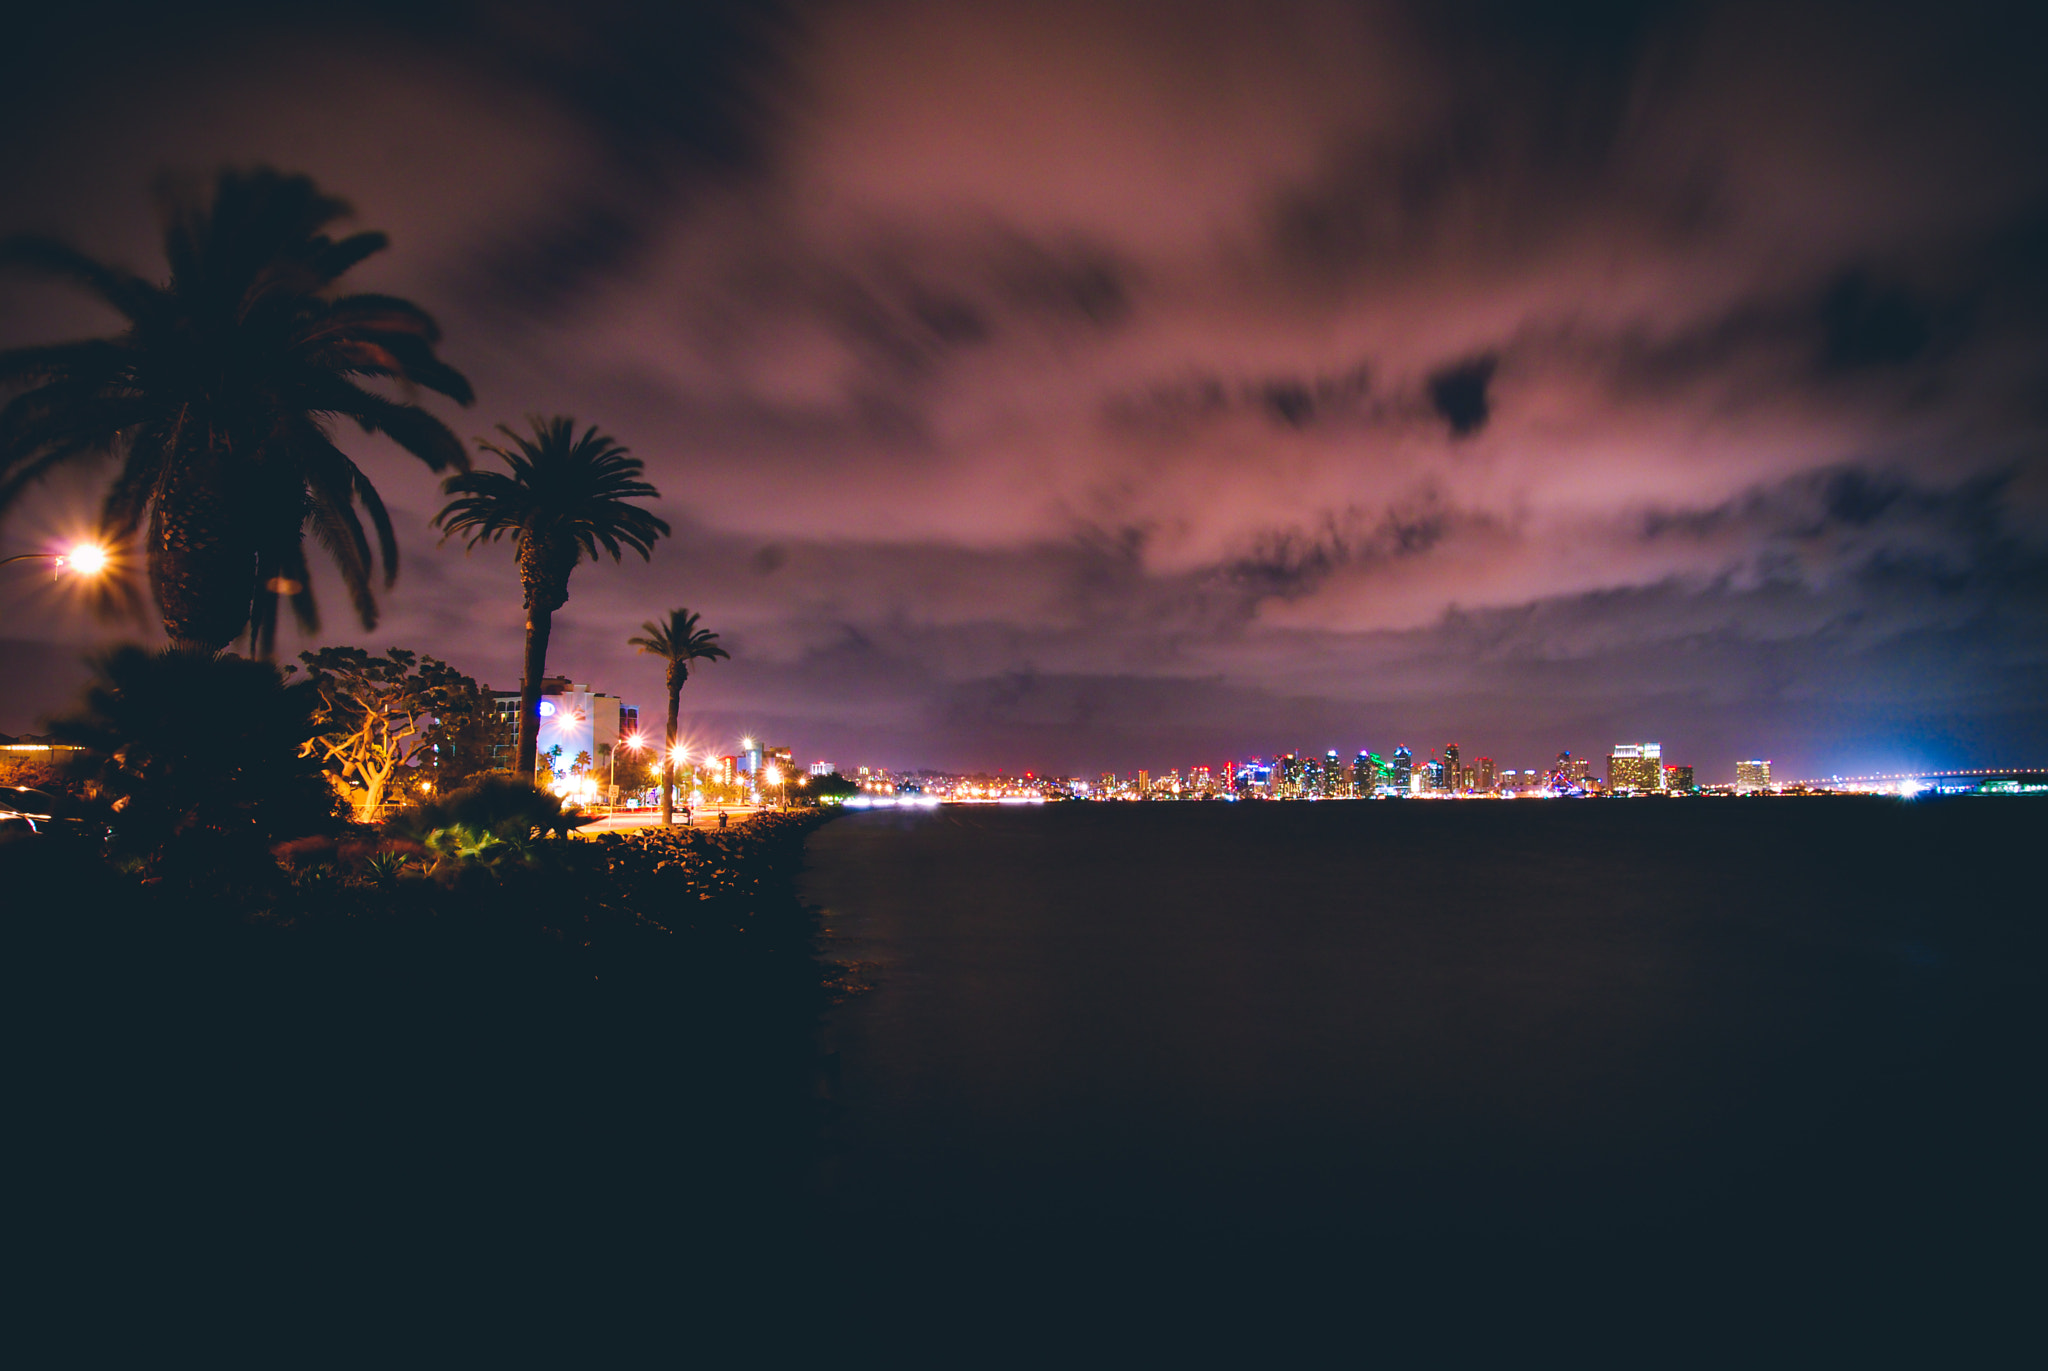 Photograph A San Diego Night by Steven Lee on 500px